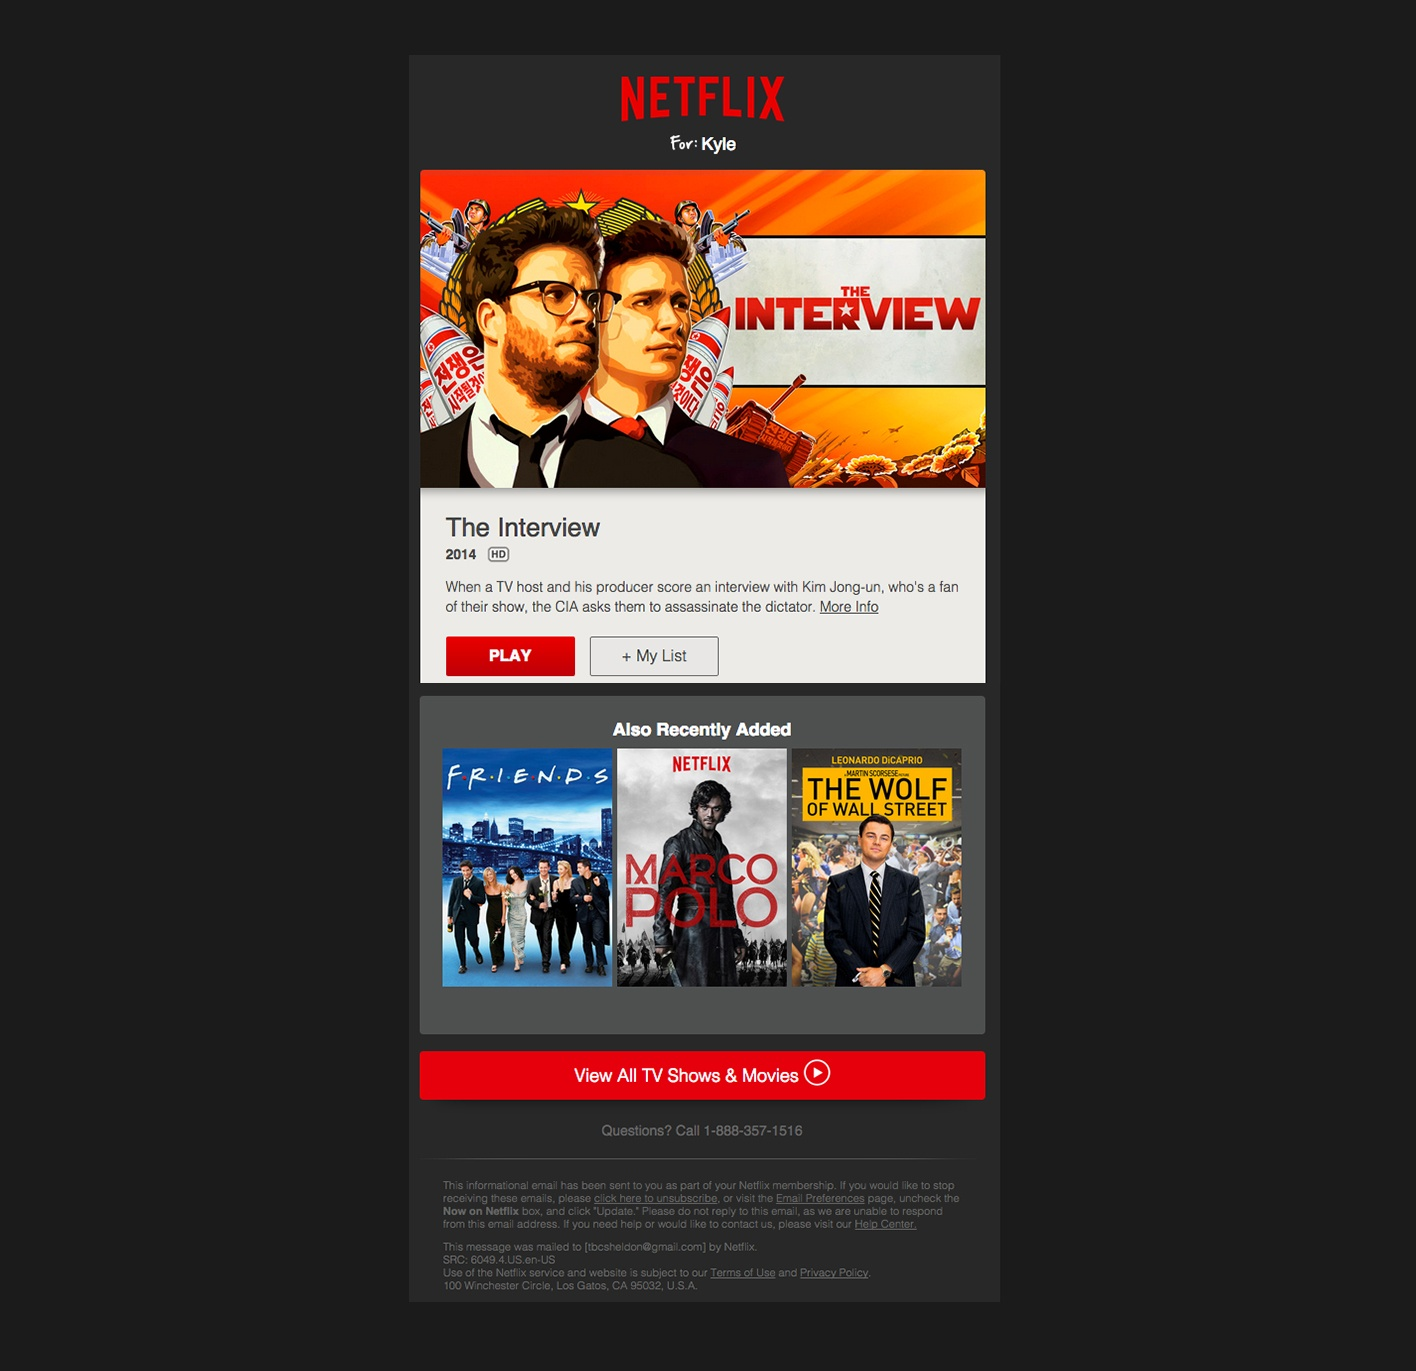 Netflix-Marketing-Email1